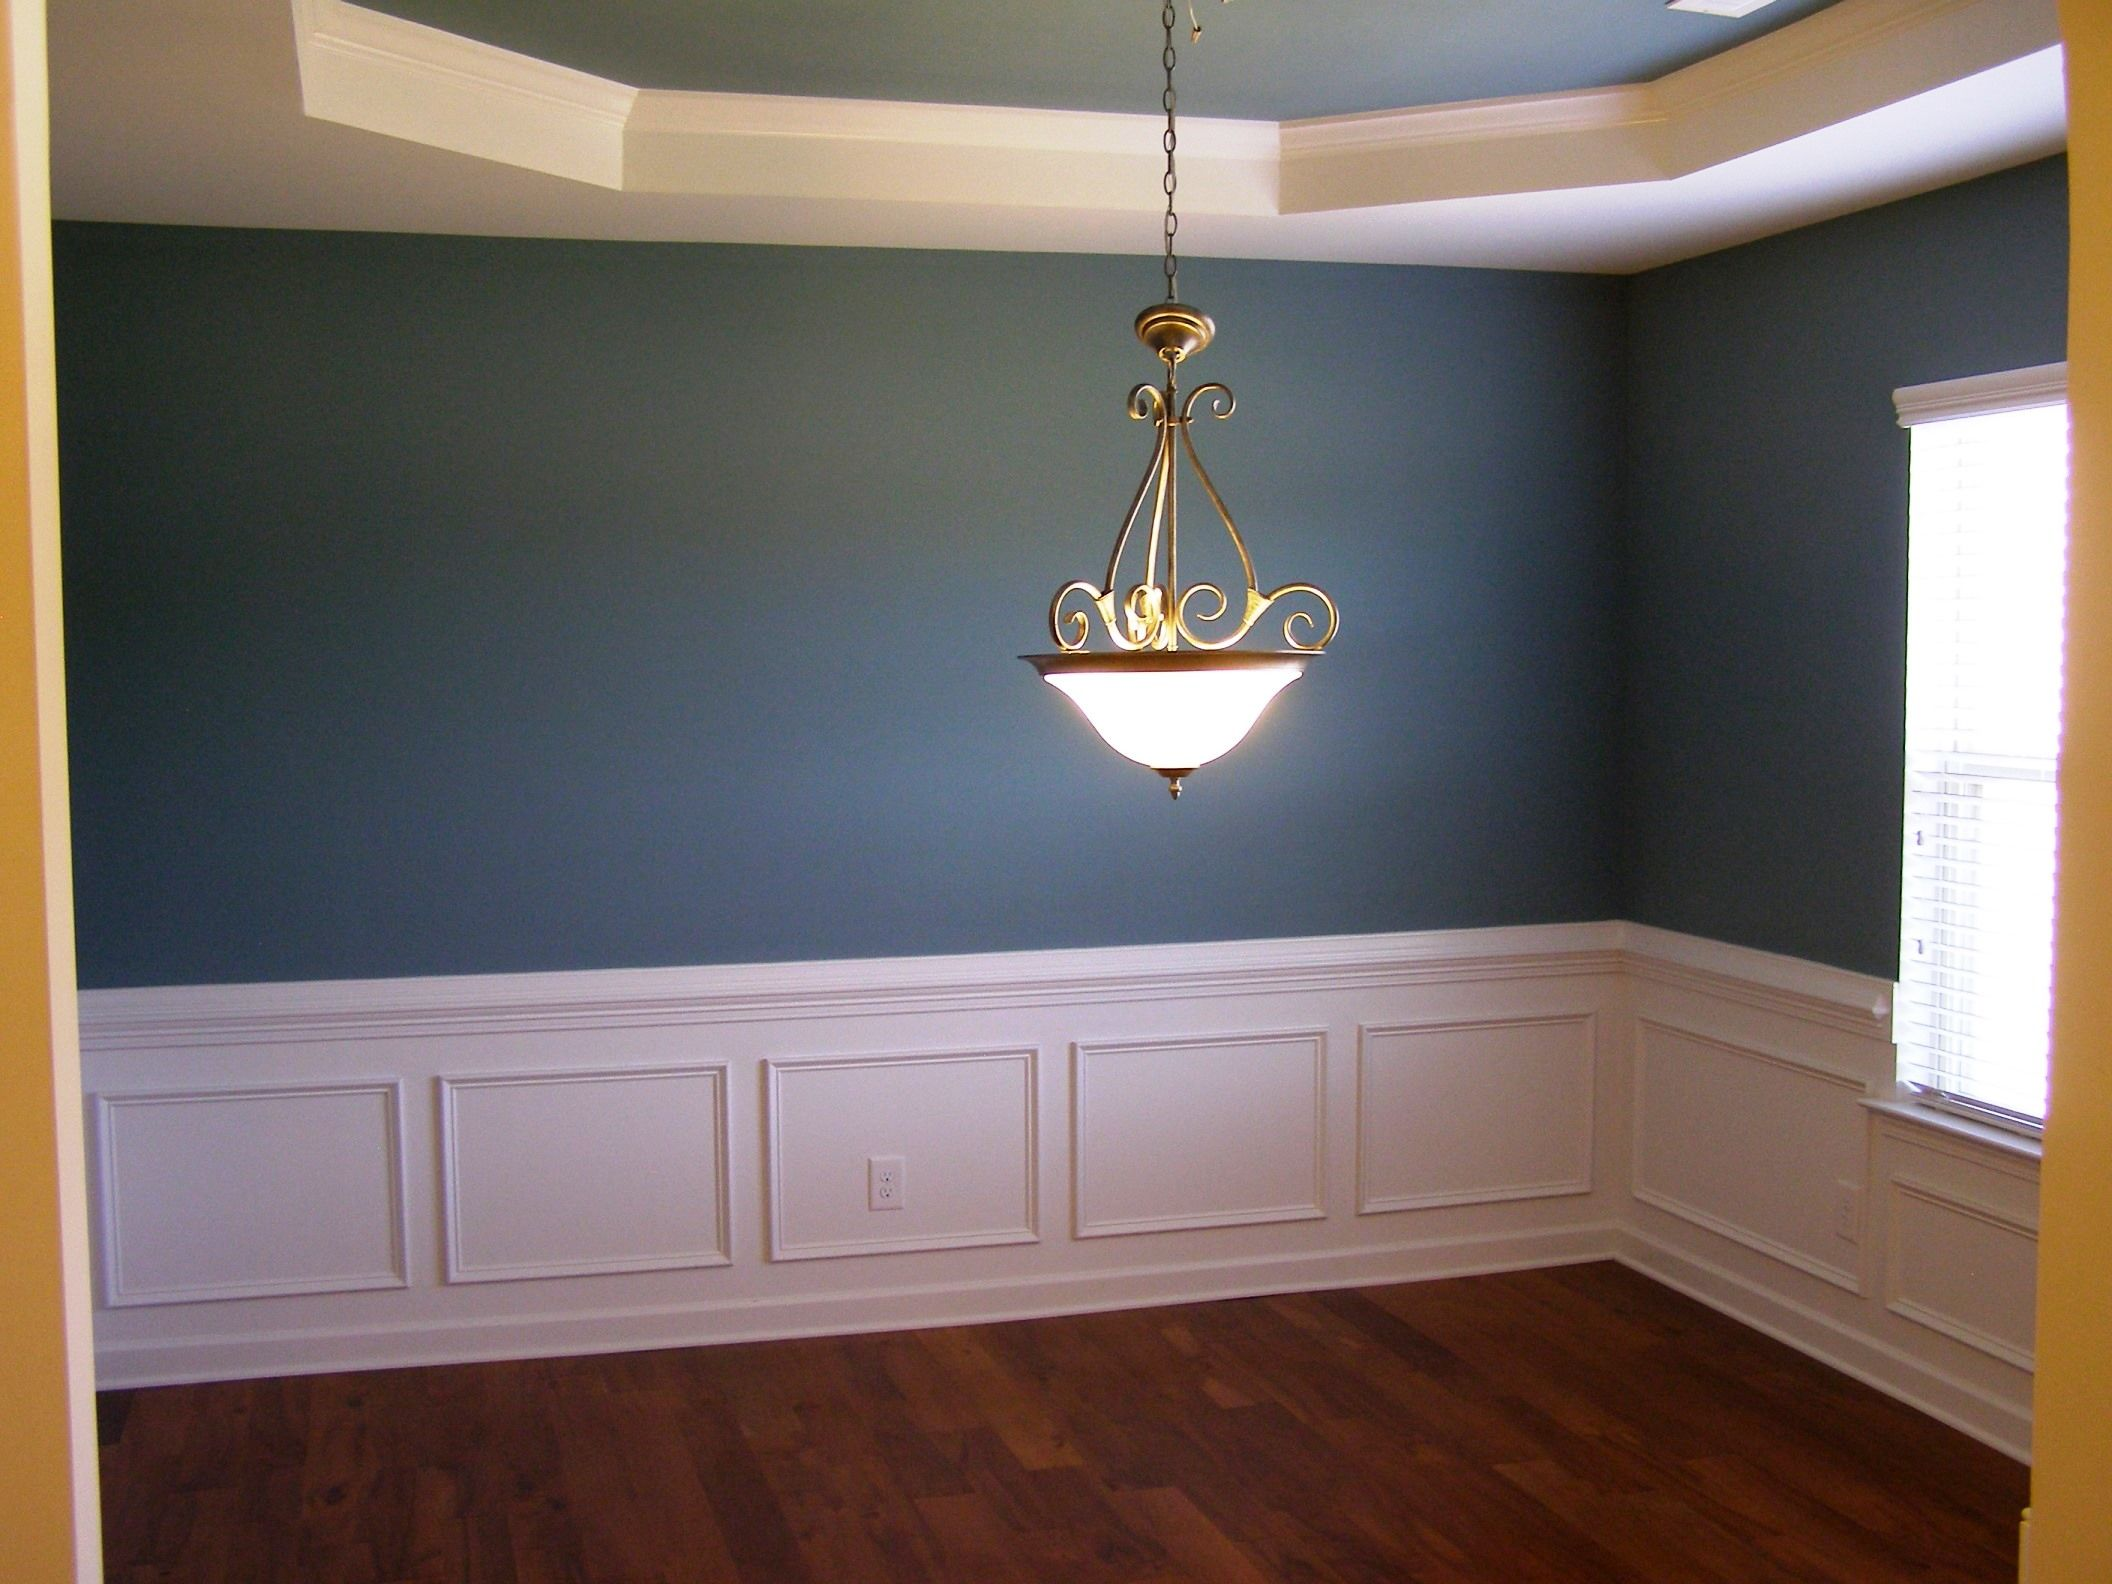 Wythe Blue Sherwin Williams Sw6221 Moody Blue By Sherwin Williams For A Beautiful Dining Room